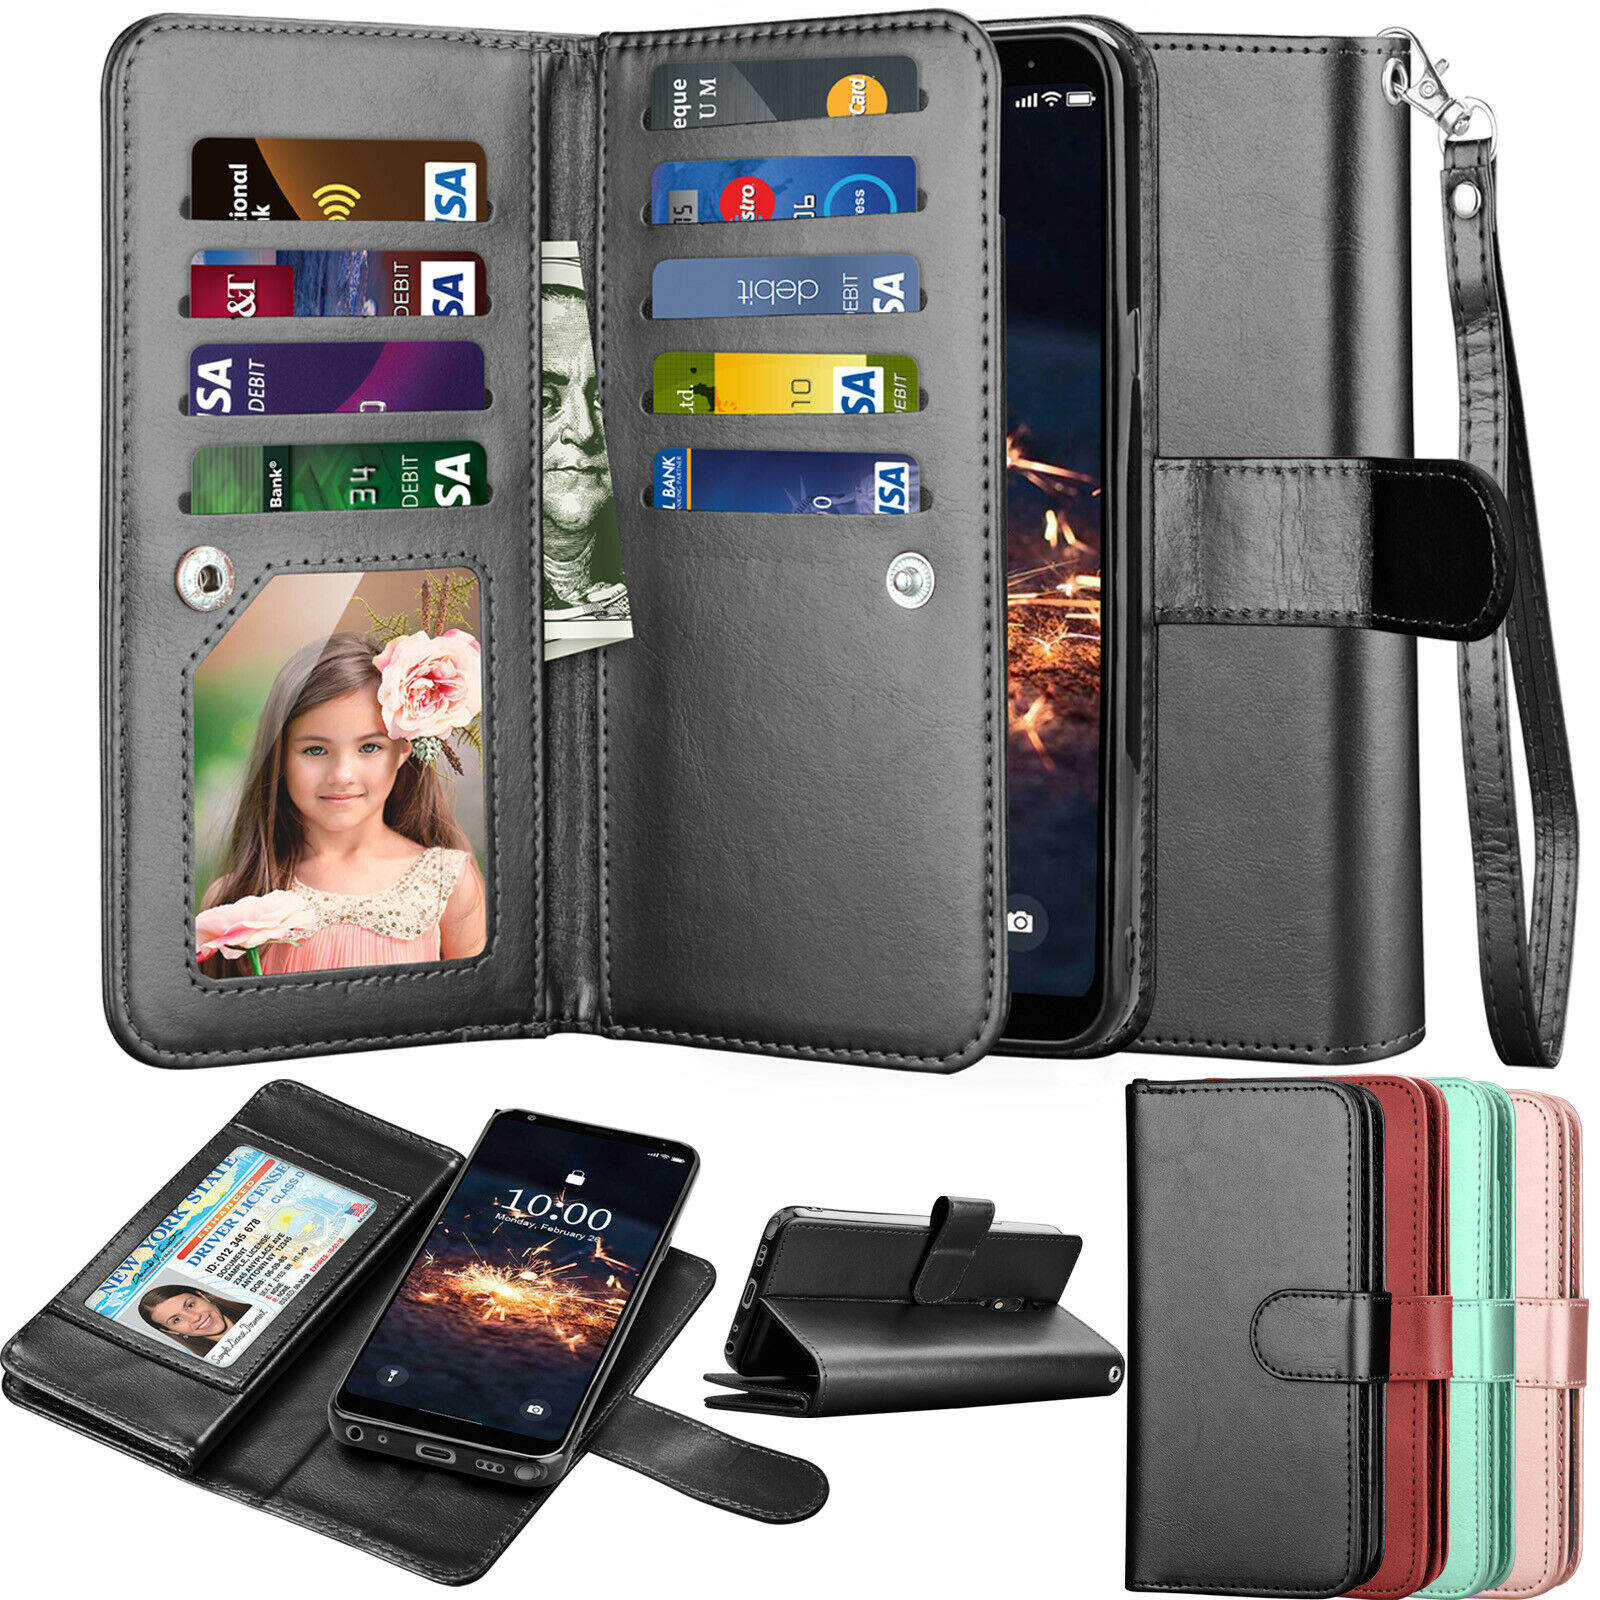 LG G6 Case The Grafu Shockproof Flip Folio PU Leather Wallet Cover for LG G6 Book Style Case with Card Holder and Magnetic Closure Rose Gold